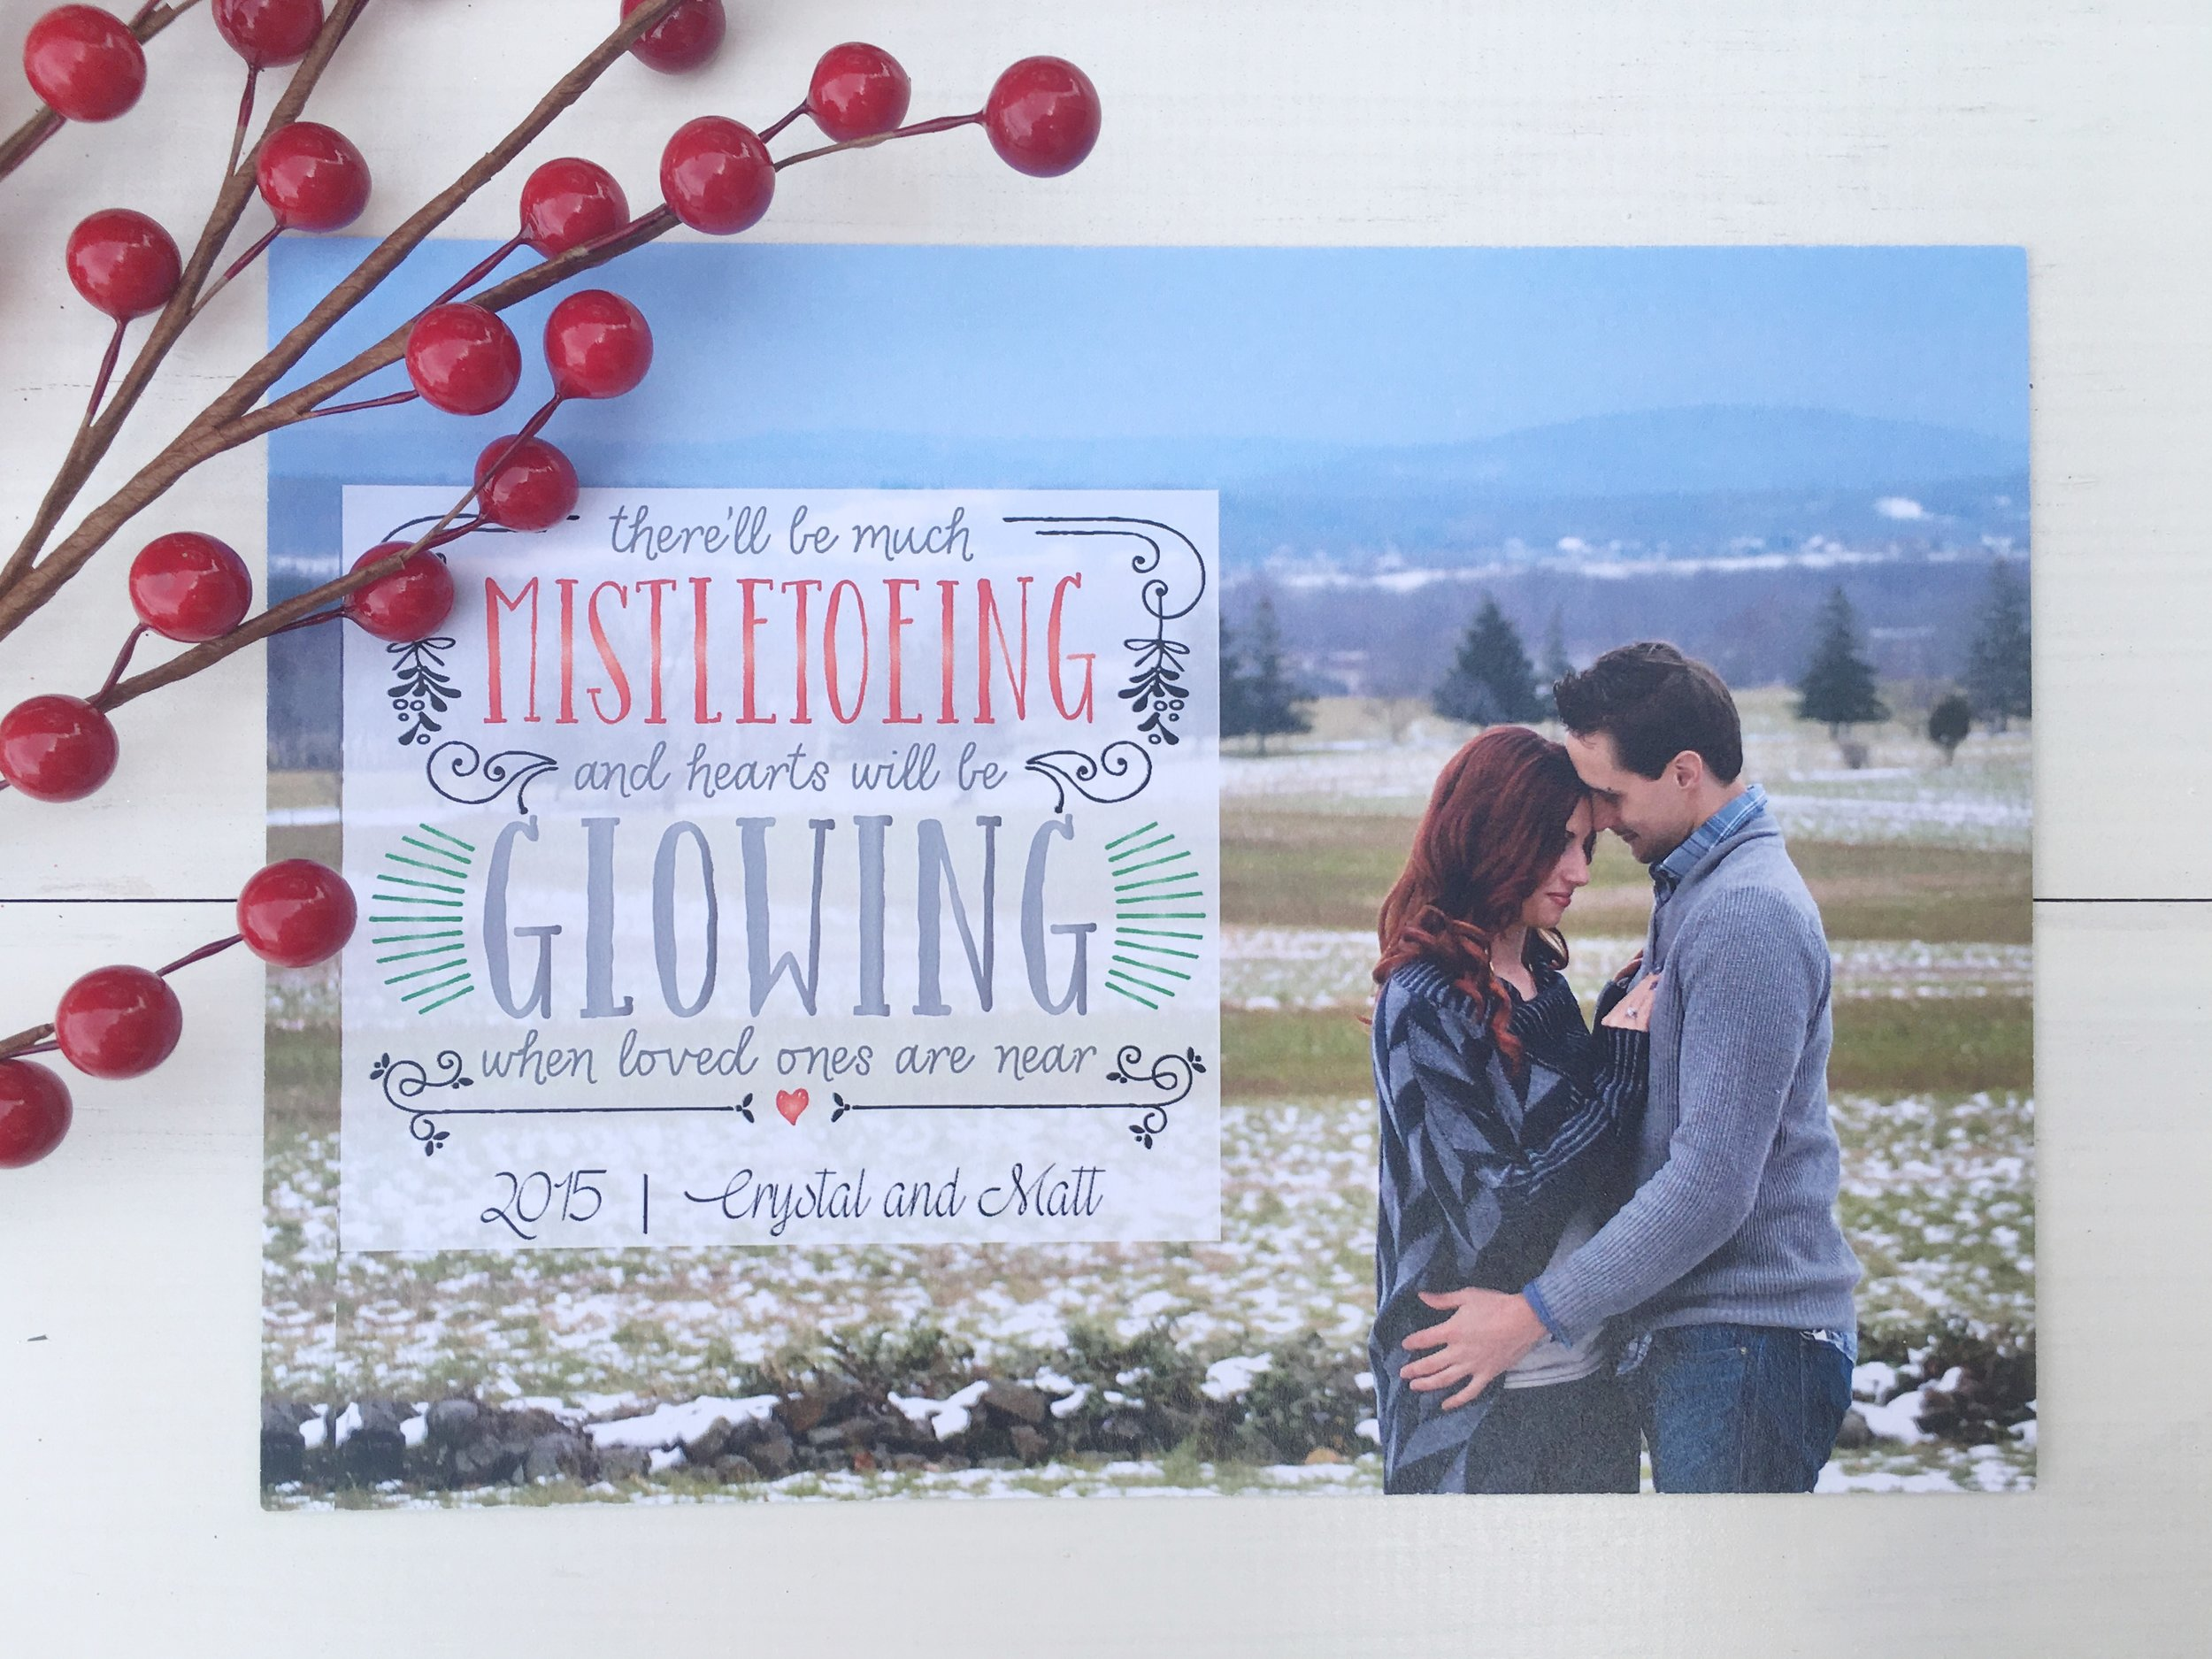 jsd newlyweds christmas card.jpg